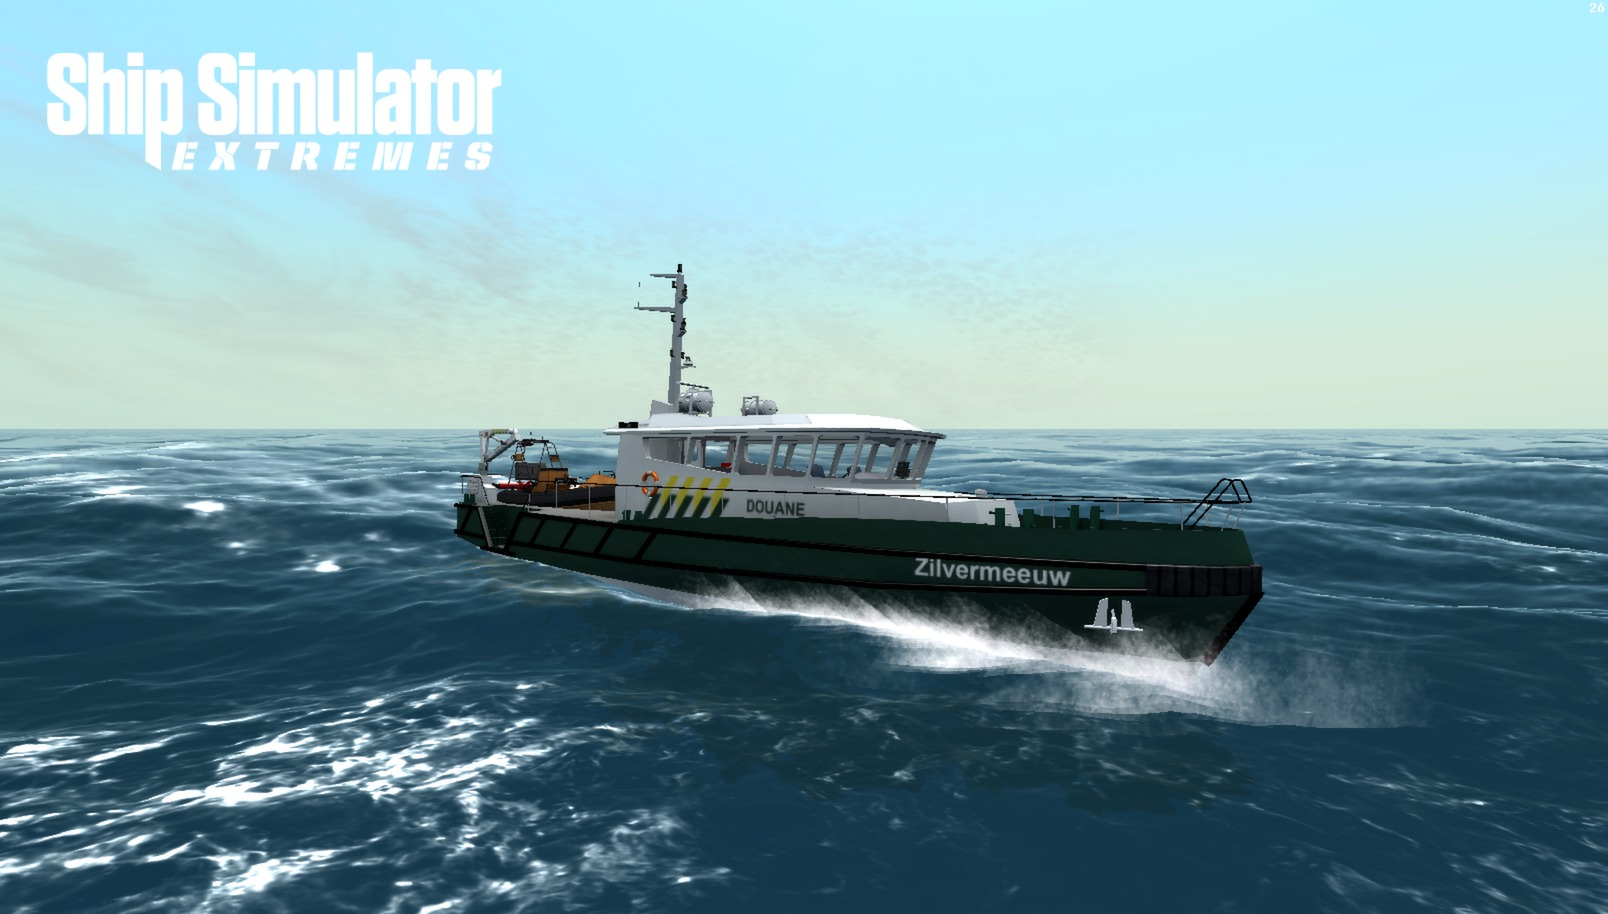 download ship simulator 2008 full version for free